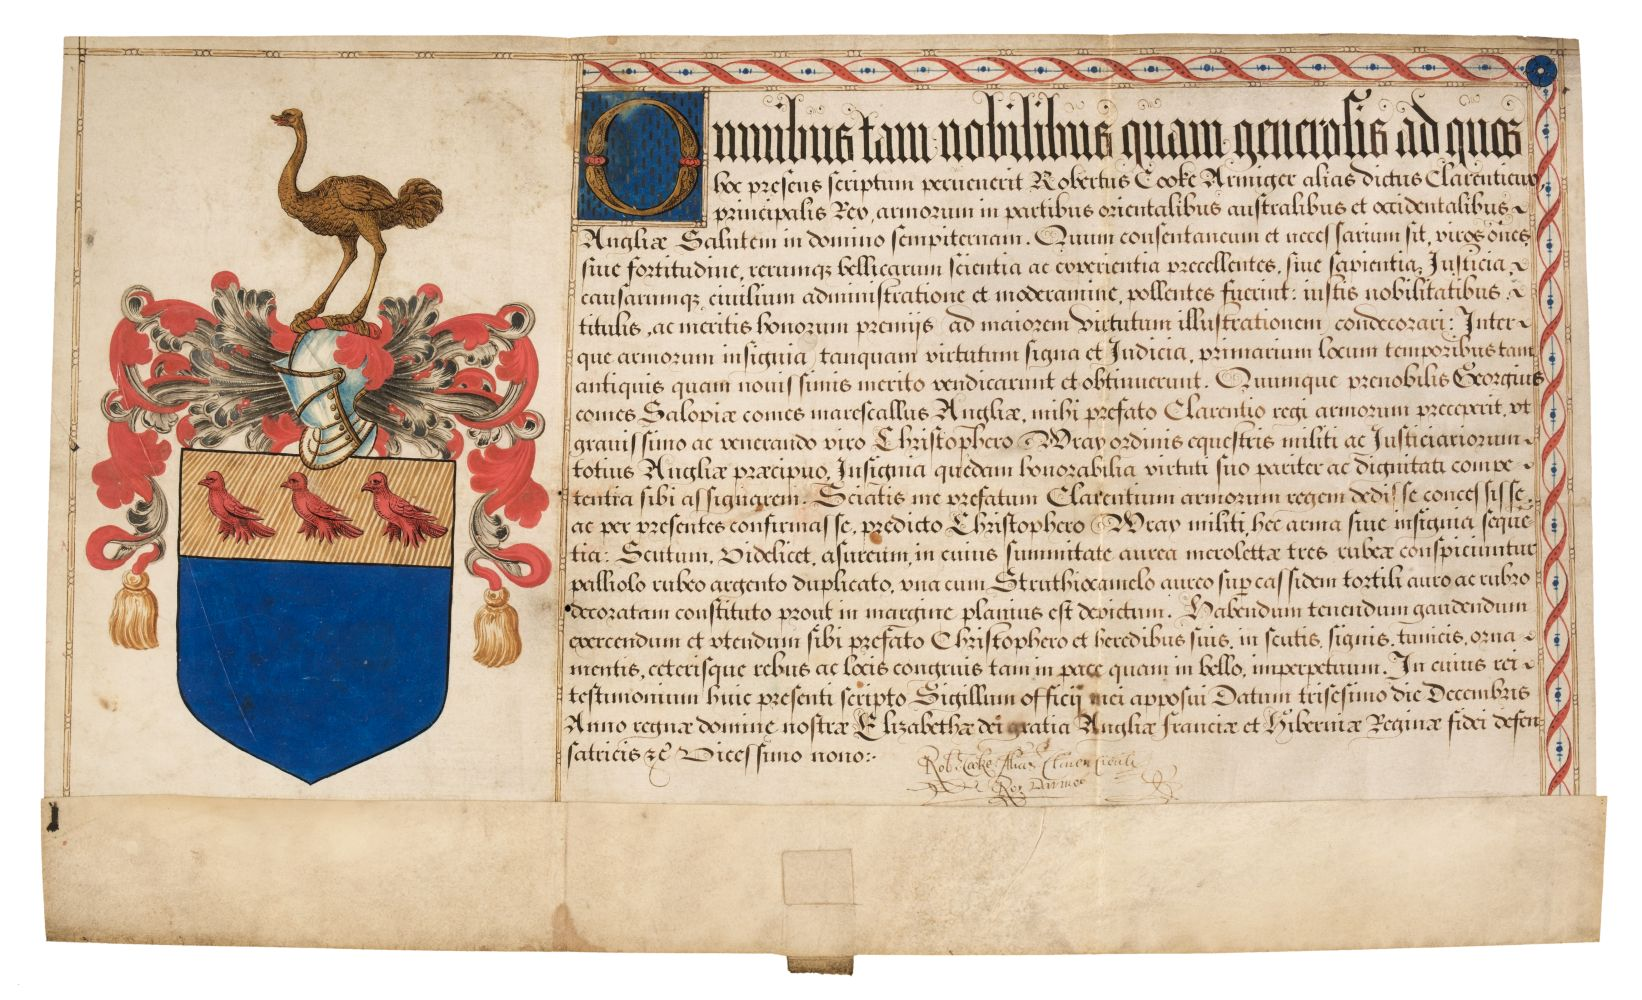 * Wray (Sir Christopher, c. 1522-1592). Patent of Arms by Robert Cooke, 1586